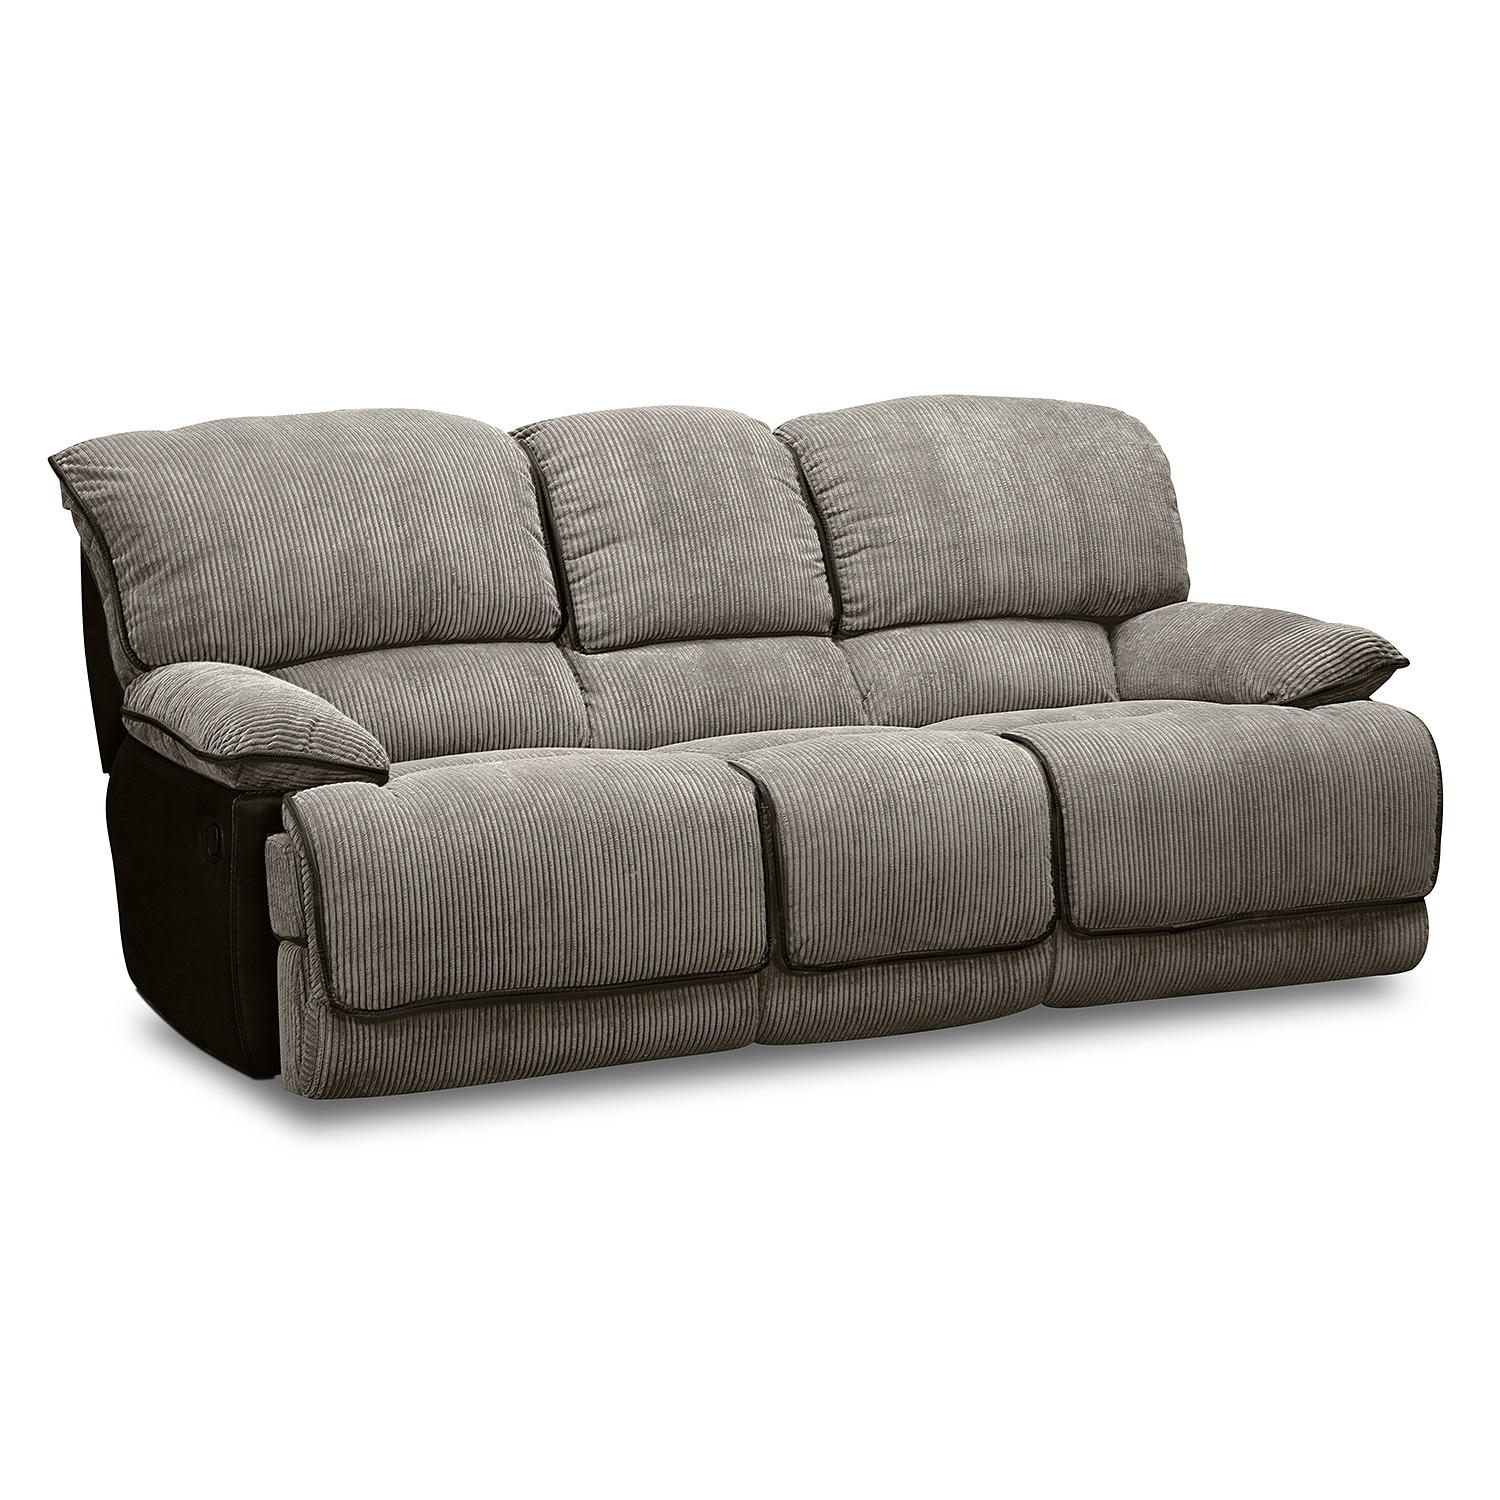 Laguna ii dual reclining sofa value city furniture for Furniture furniture